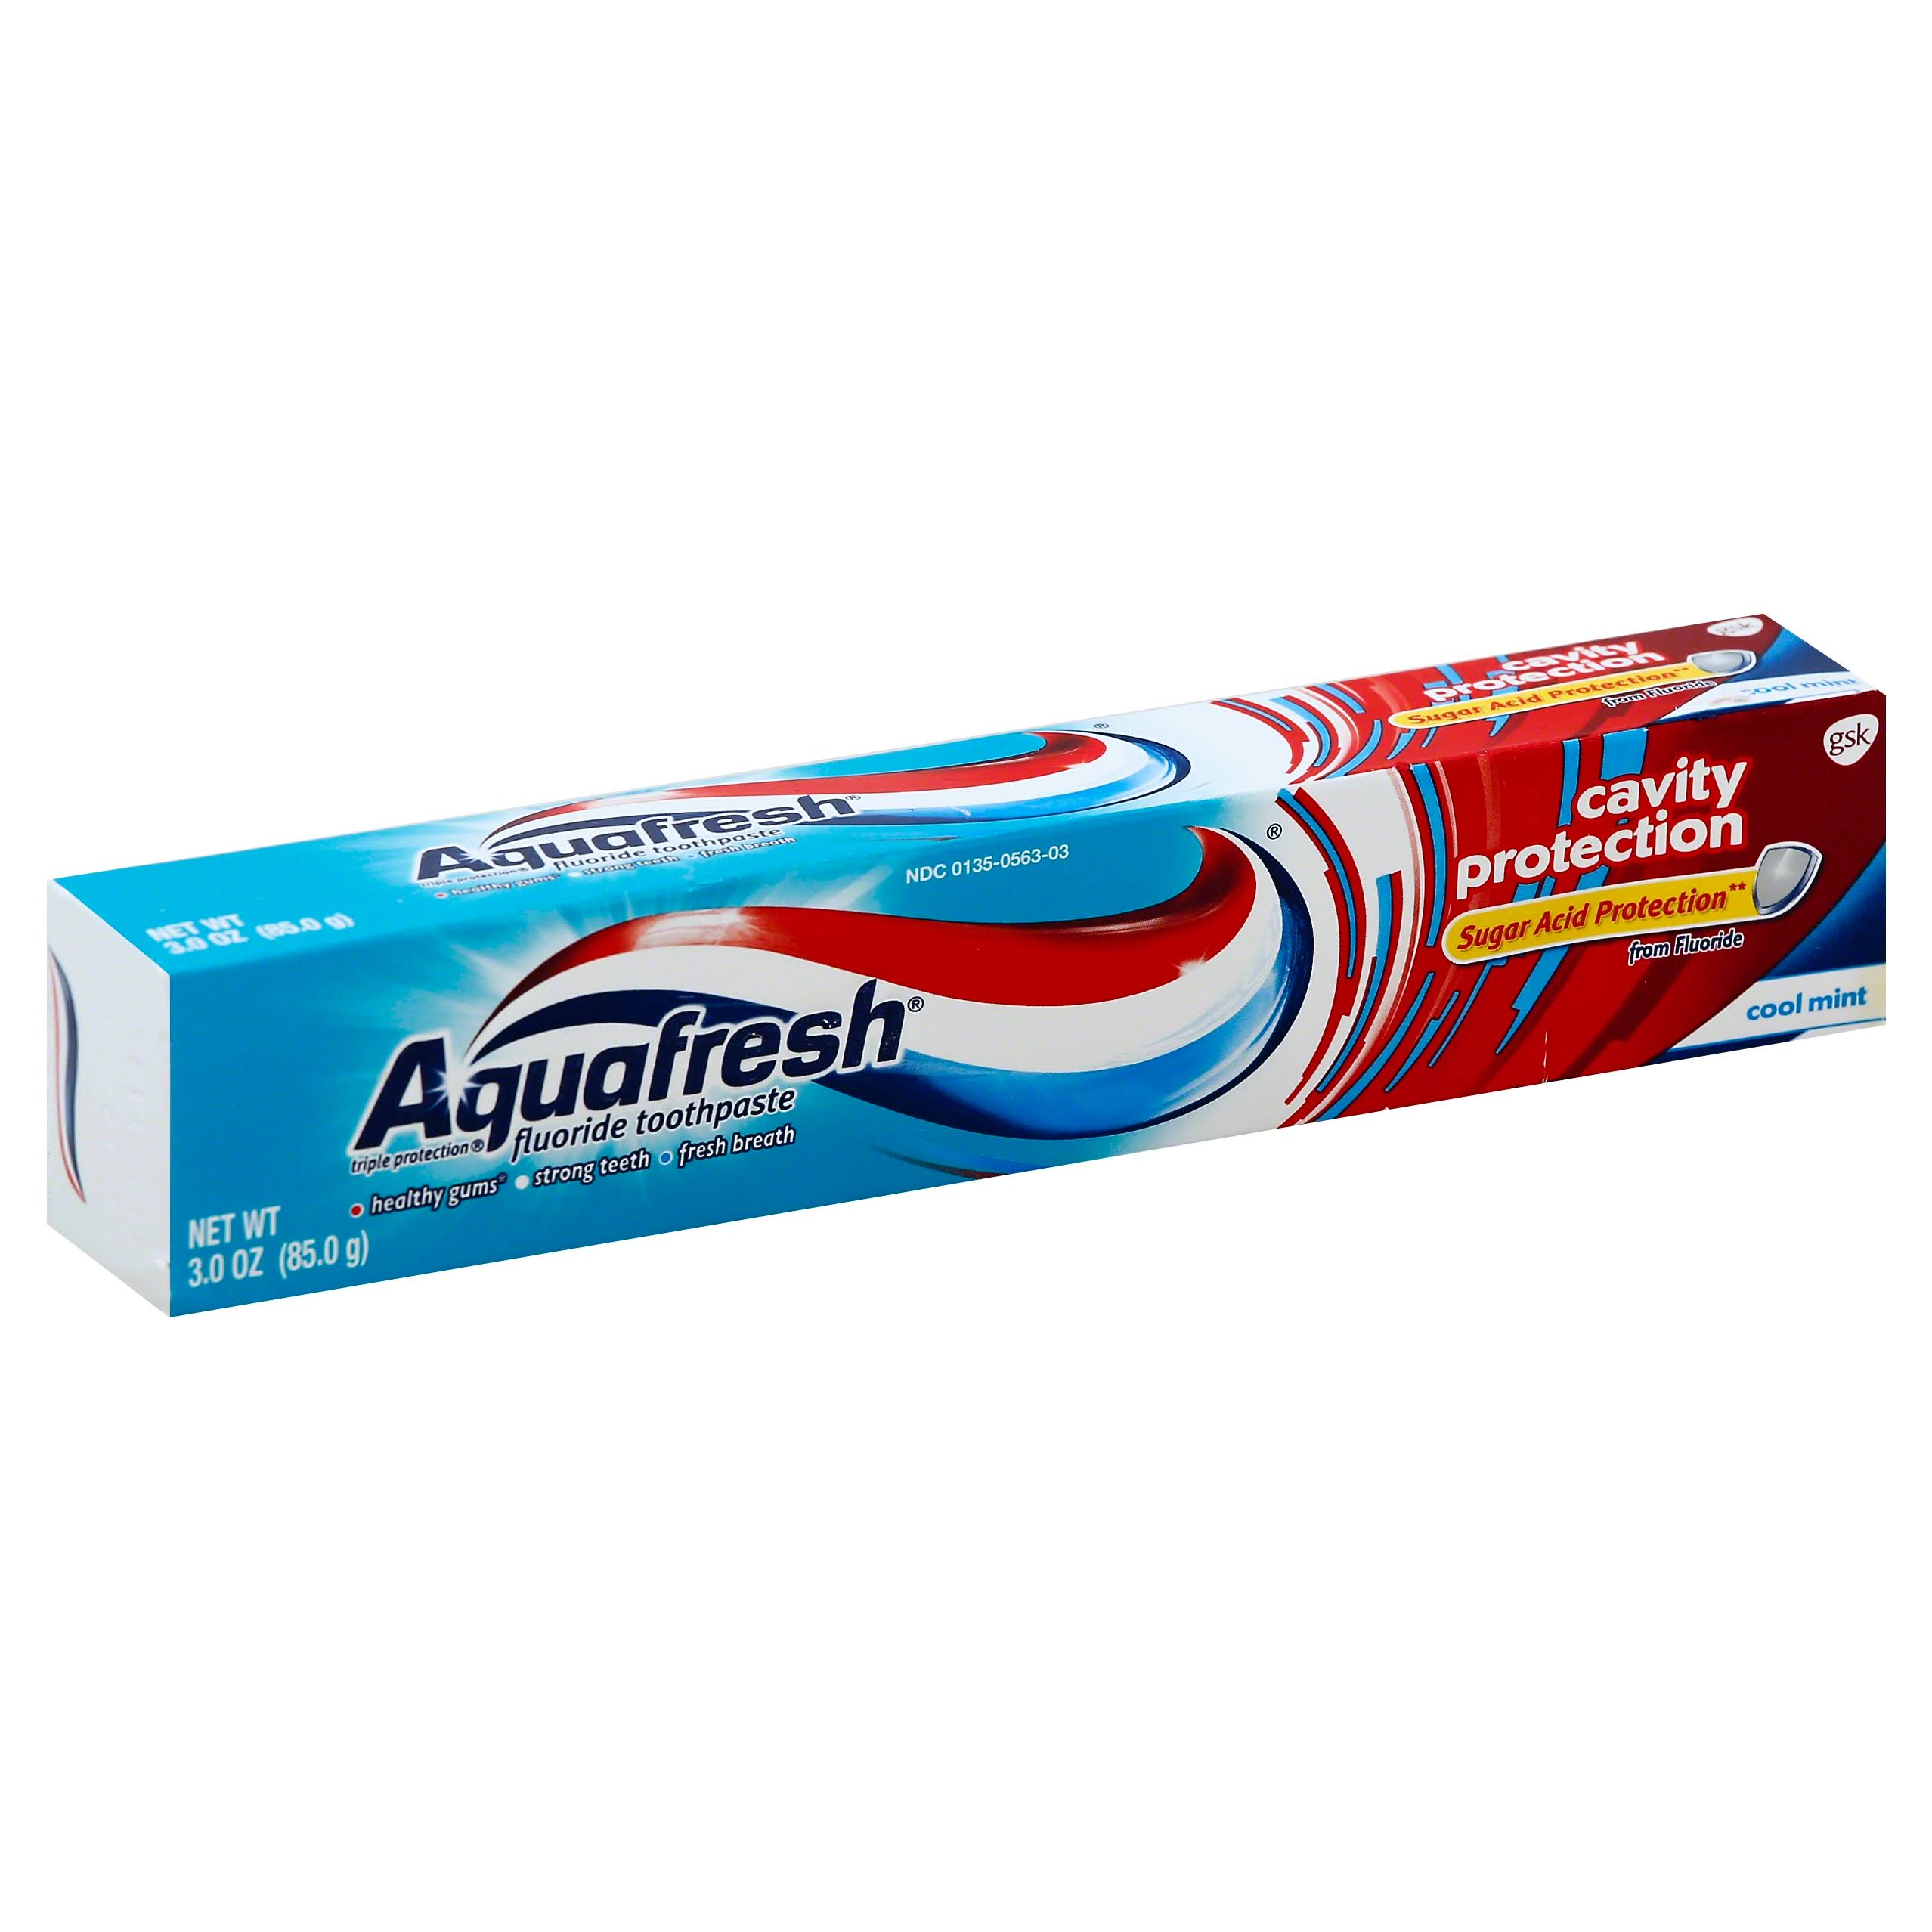 Aquafresh Cavity Protection Fluoride Toothpaste - Cool Mint, 3oz